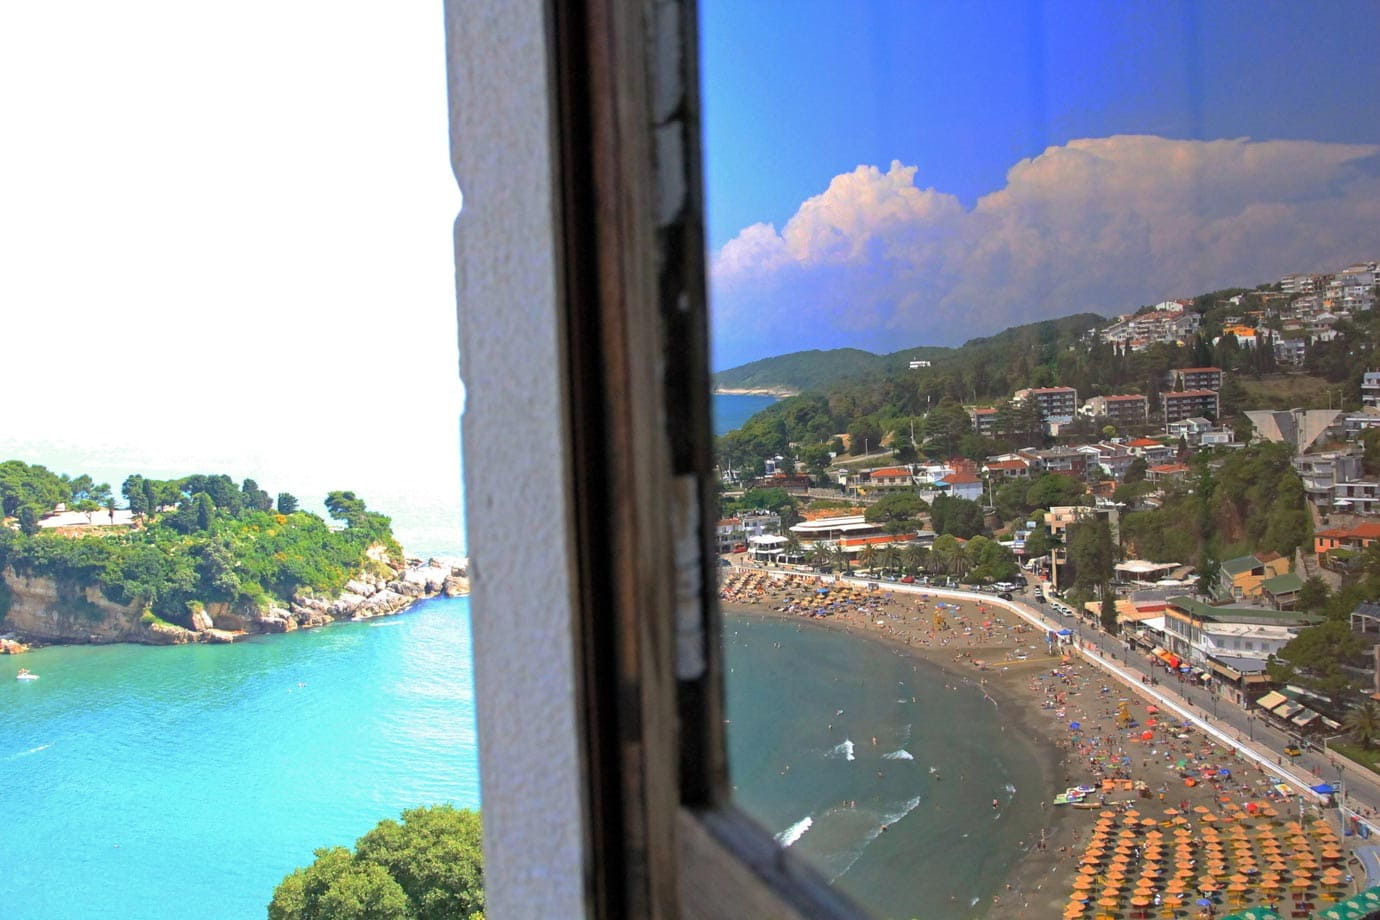 The view from the museum in Ulcinj